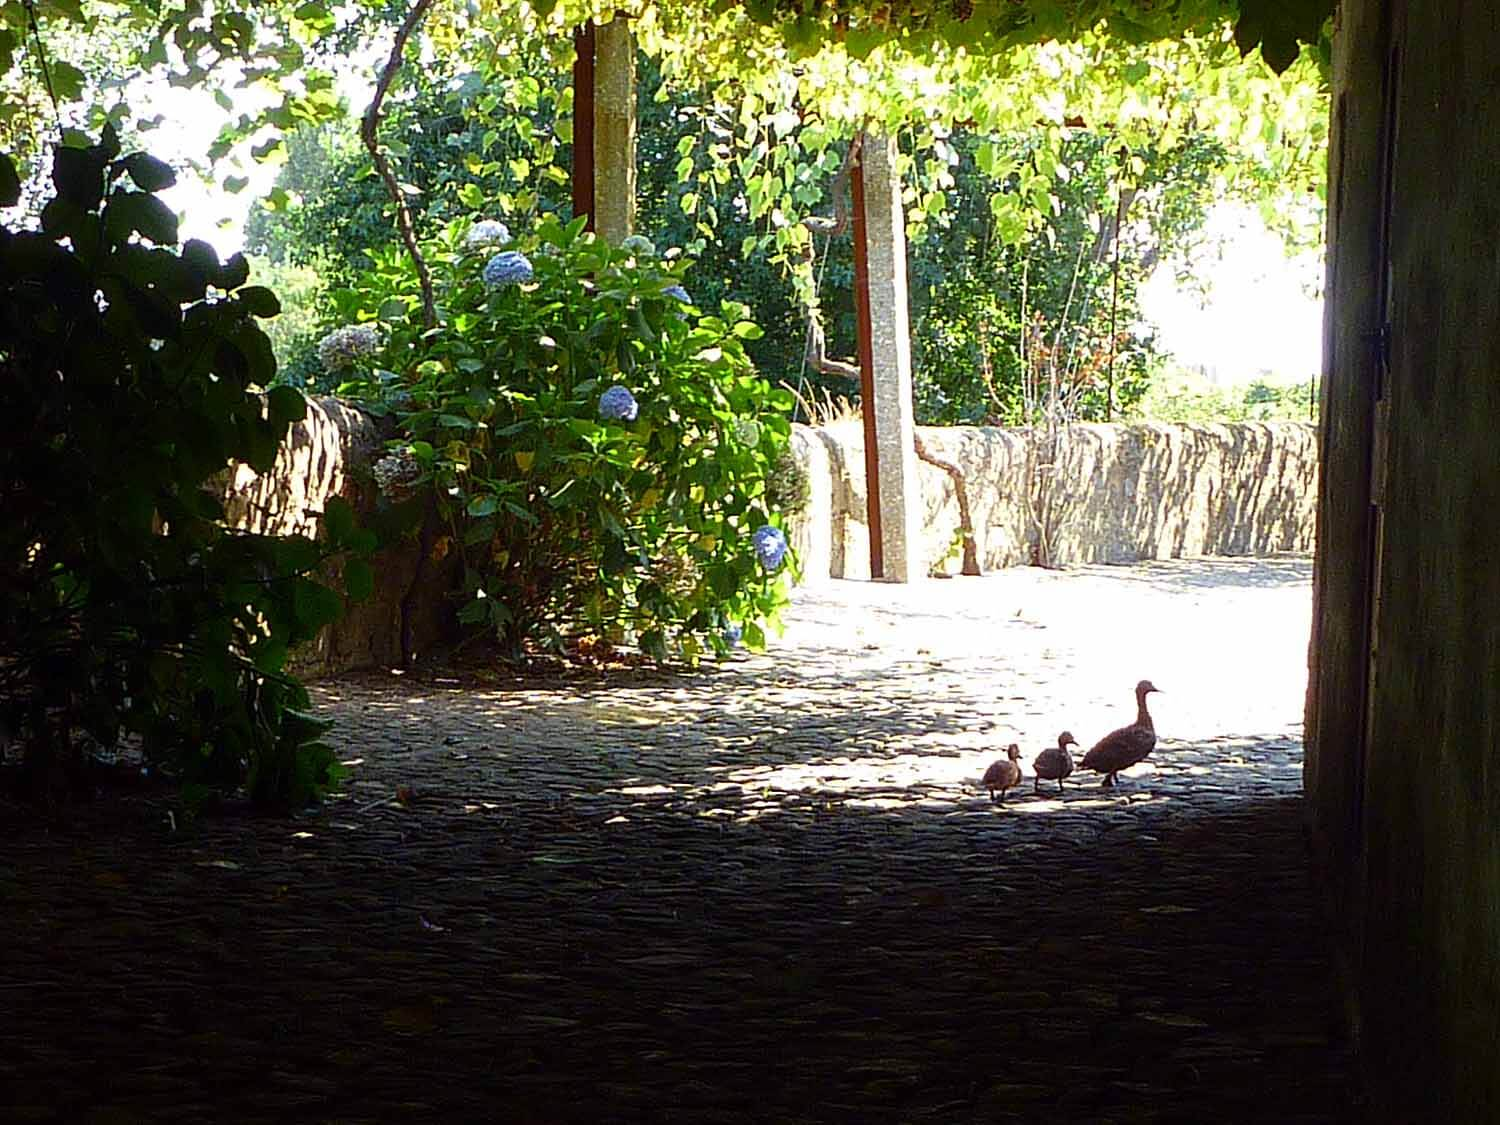 portugal-porto-oporto-museum-fundacao-foundation-serralves-ducks.JPG